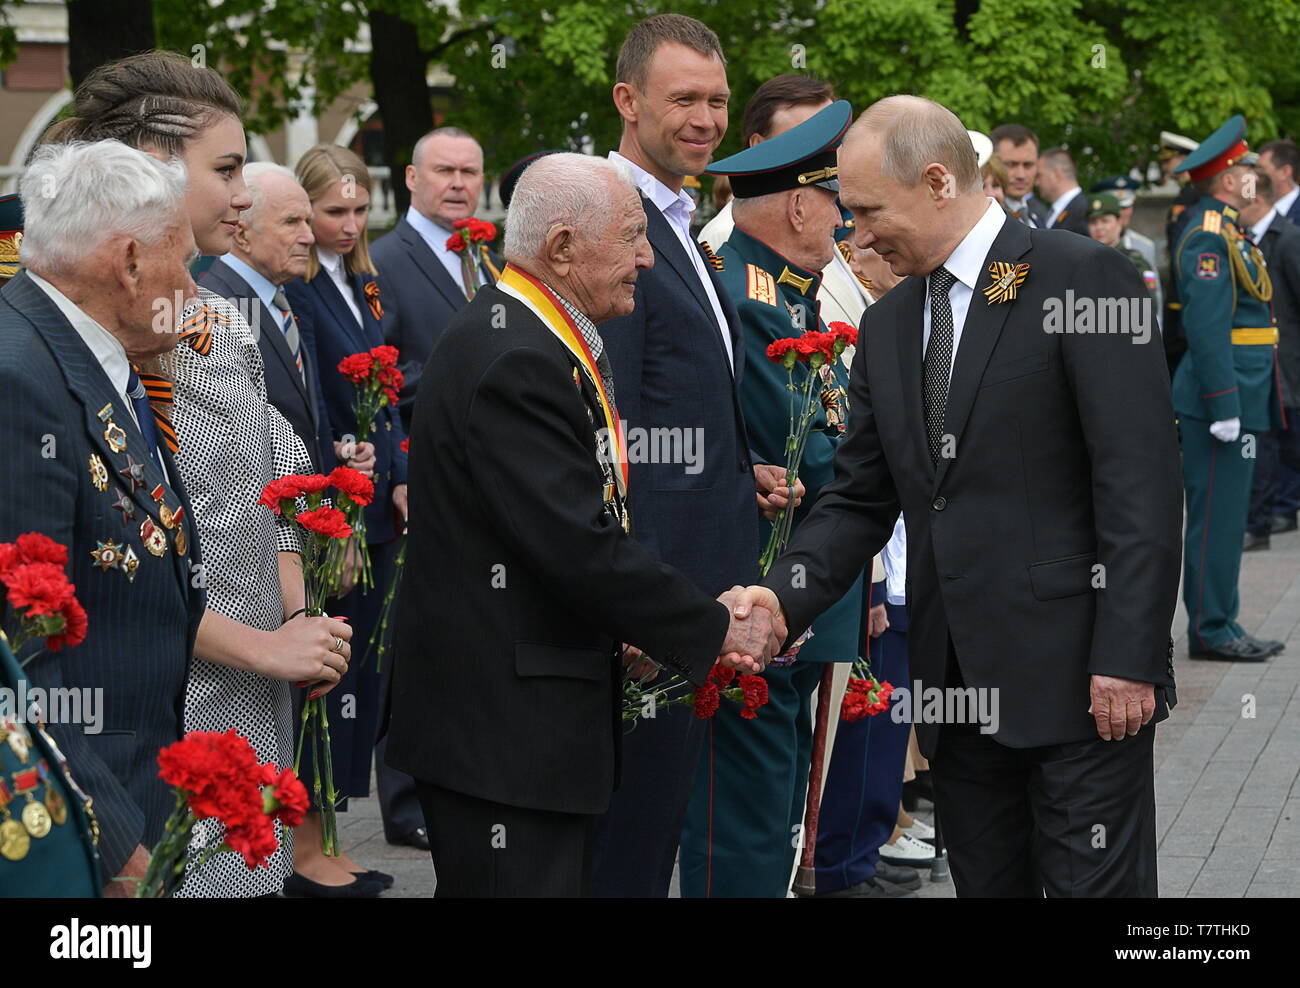 Moscow, Russia. 09th May, 2019. MOSCOW, RUSSIA - MAY 9, 2019: Russia's President Vladimir Putin (R) greets WWII veterans ahead of a ceremony to lay flowers at the Tomb of the Unknown Soldier by the Kremlin Wall during celebrations marking the 74th anniversary of the victory of the Soviet Red Army over Nazi Germany in the Great Patriotic War of 1941-45, the Eastern Front of the Second World War. Alexei Druzhinin/Russian Presidential Press and Information Office/TASS Credit: ITAR-TASS News Agency/Alamy Live News - Stock Image